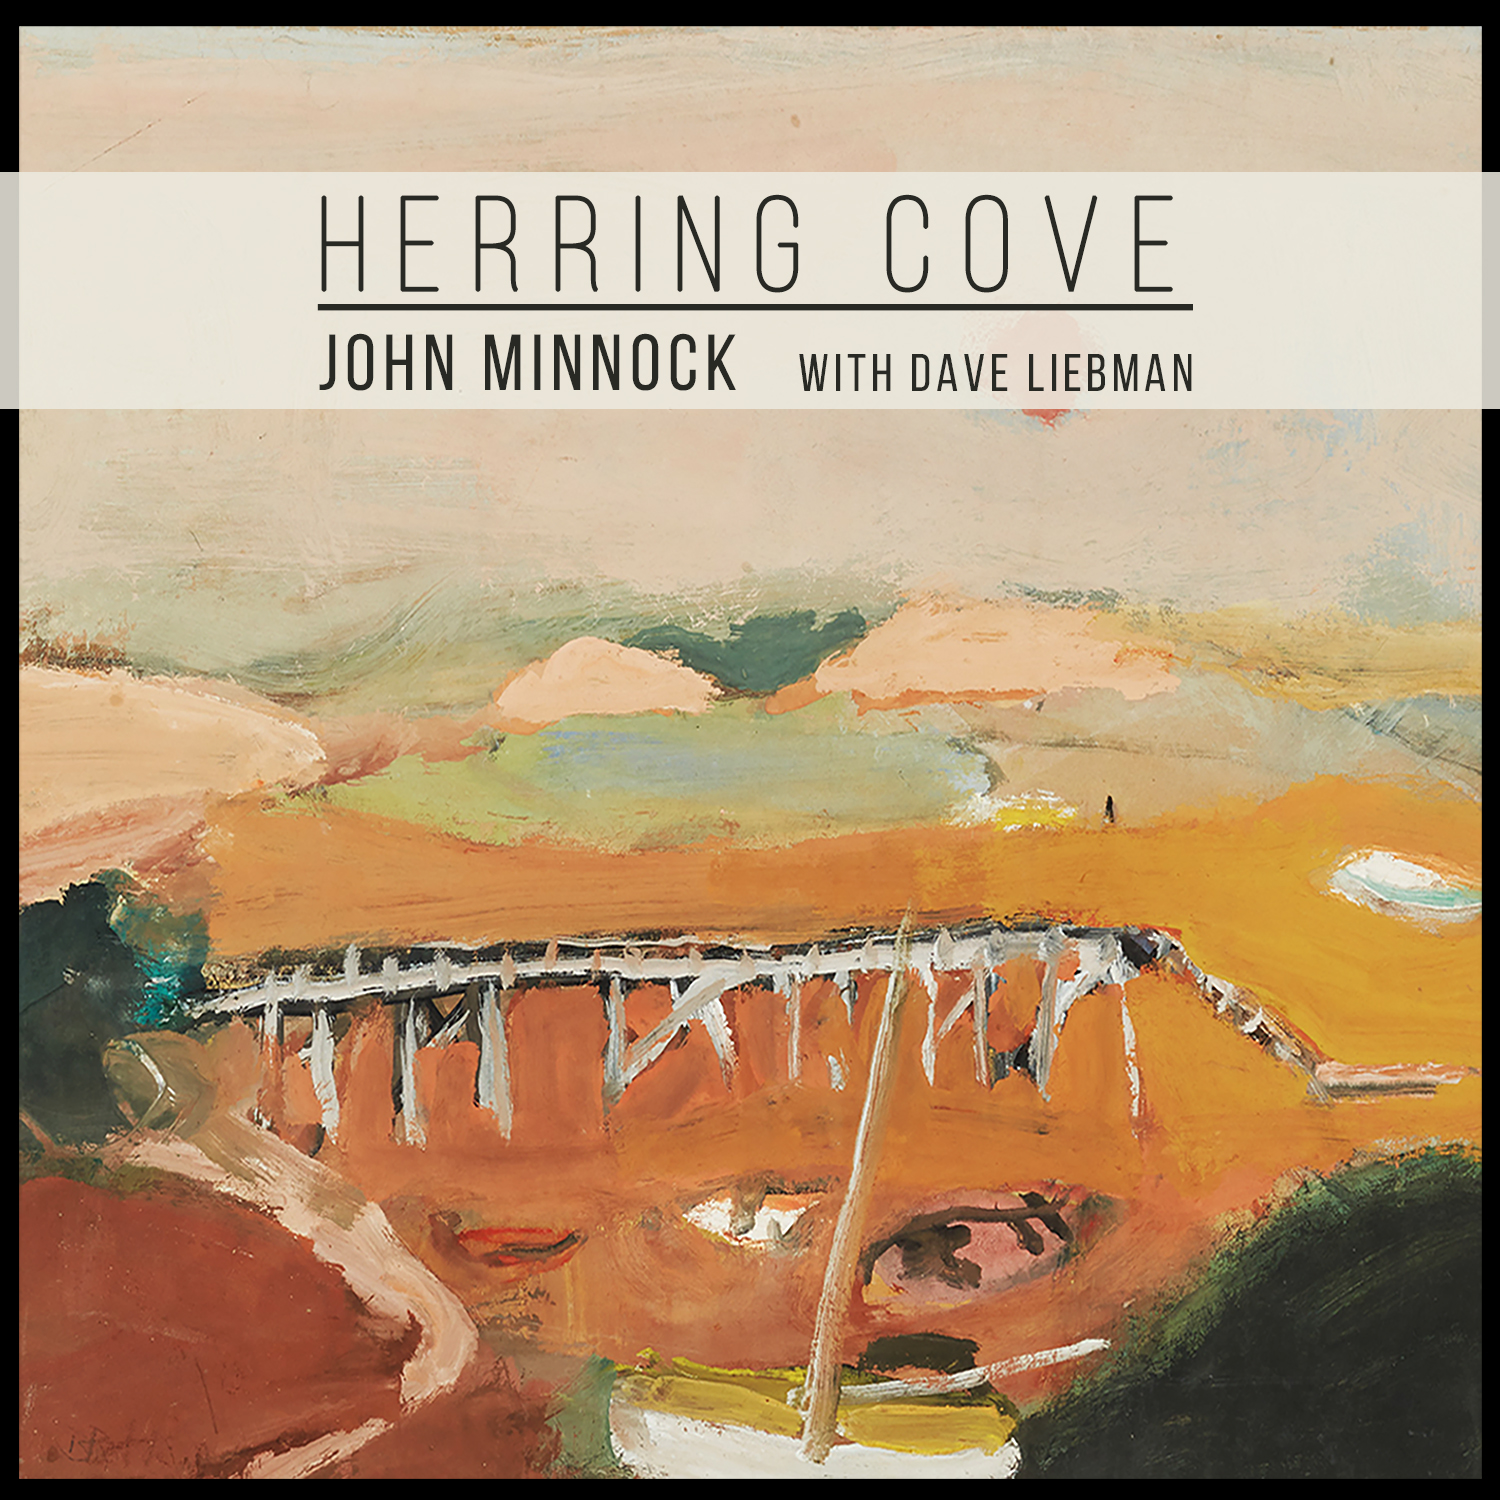 NEW RELEASE: John Minnock's Third Album HERRING COVE is out June 5th on Dot Time